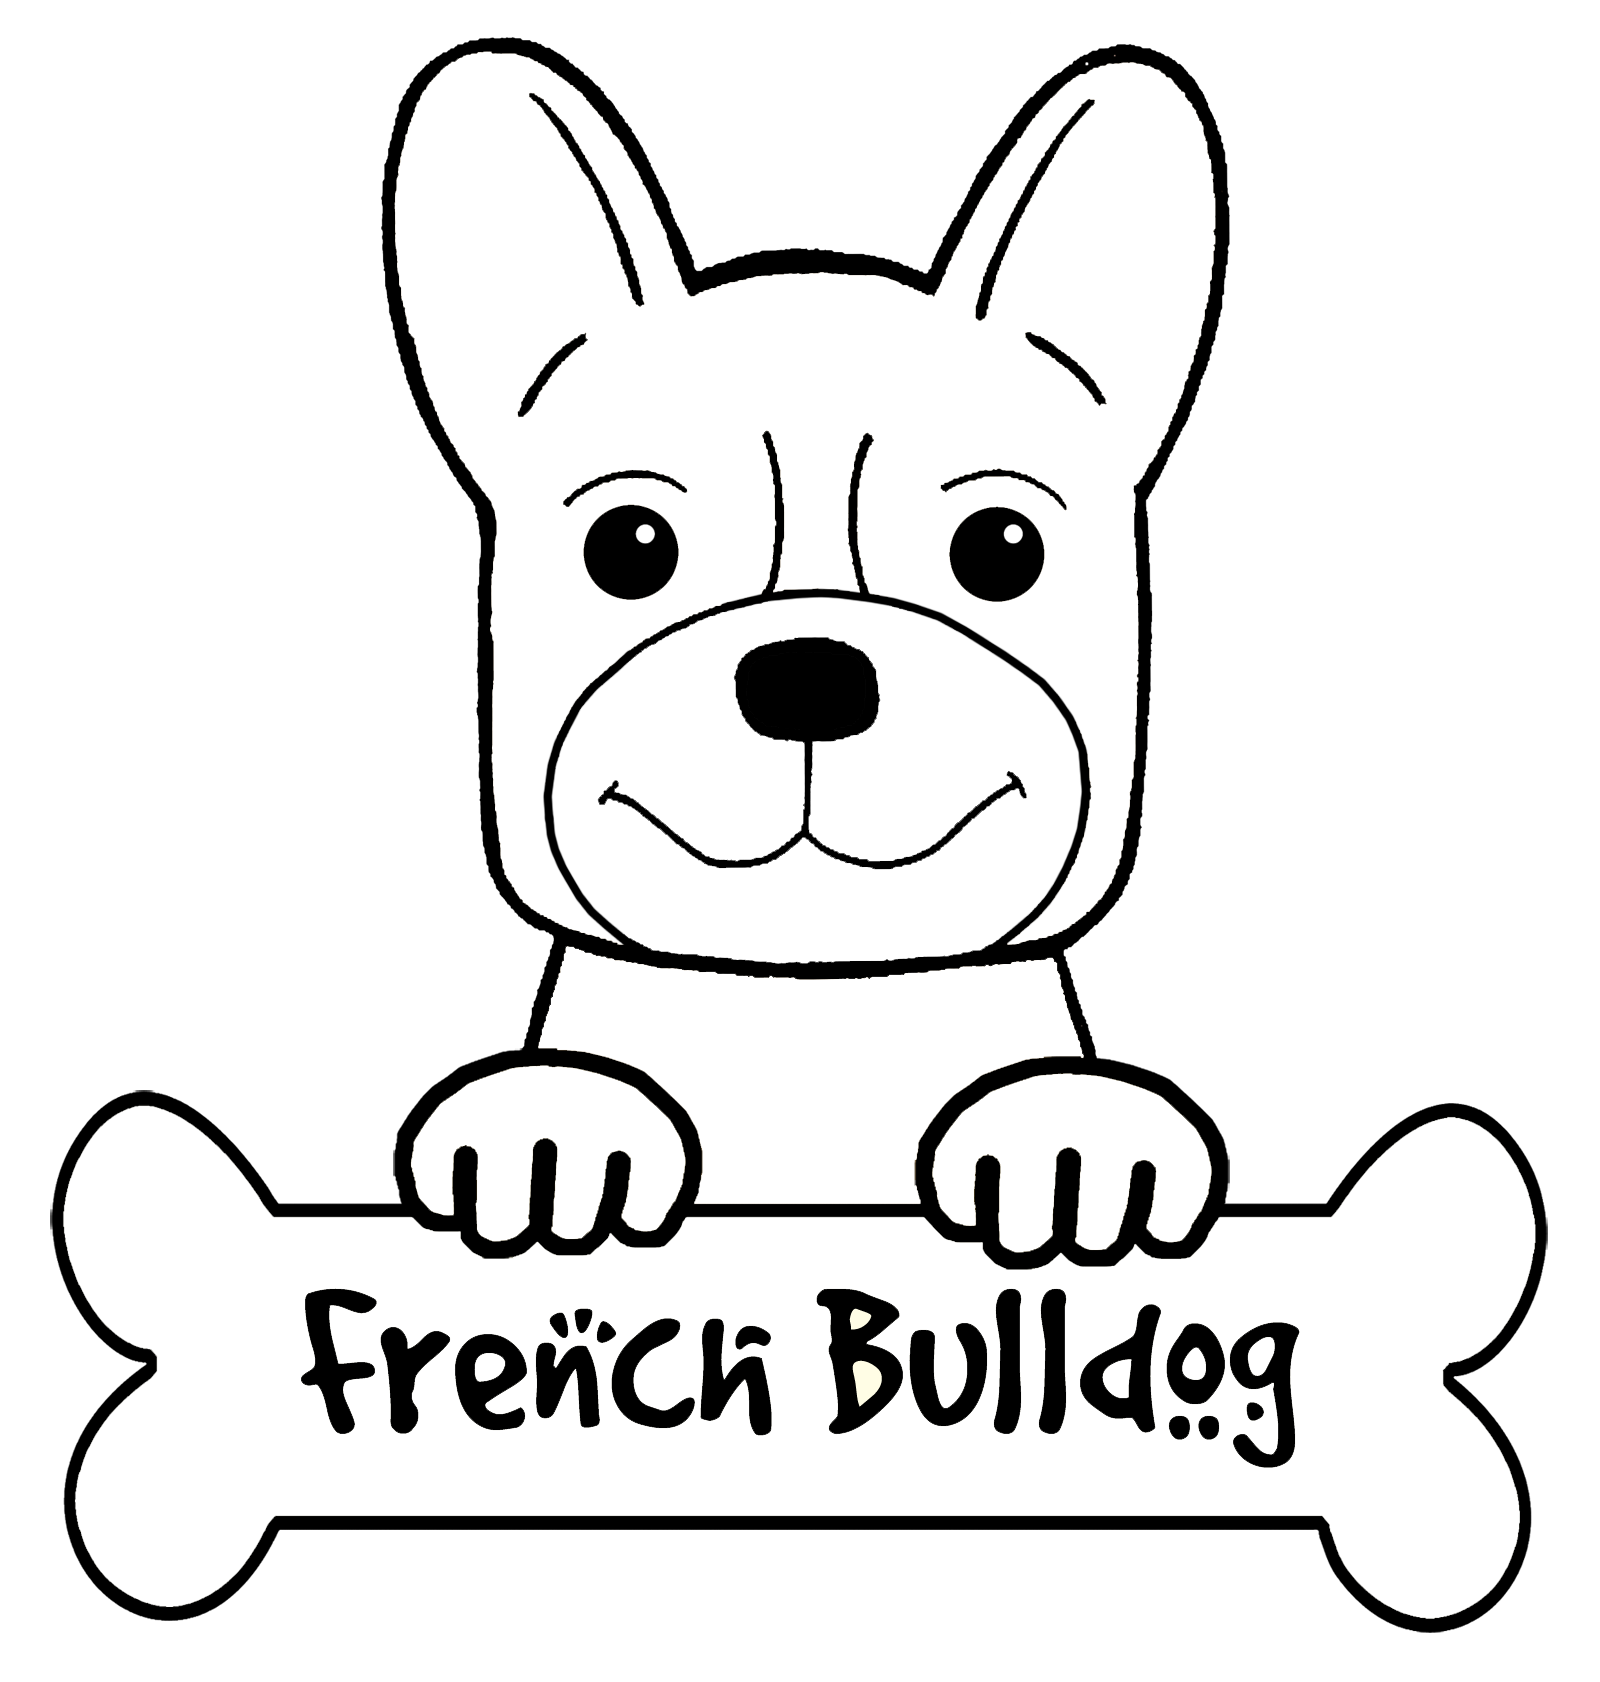 13 Pics of French Bulldog Coloring Pages Free - Coloring Pages ...